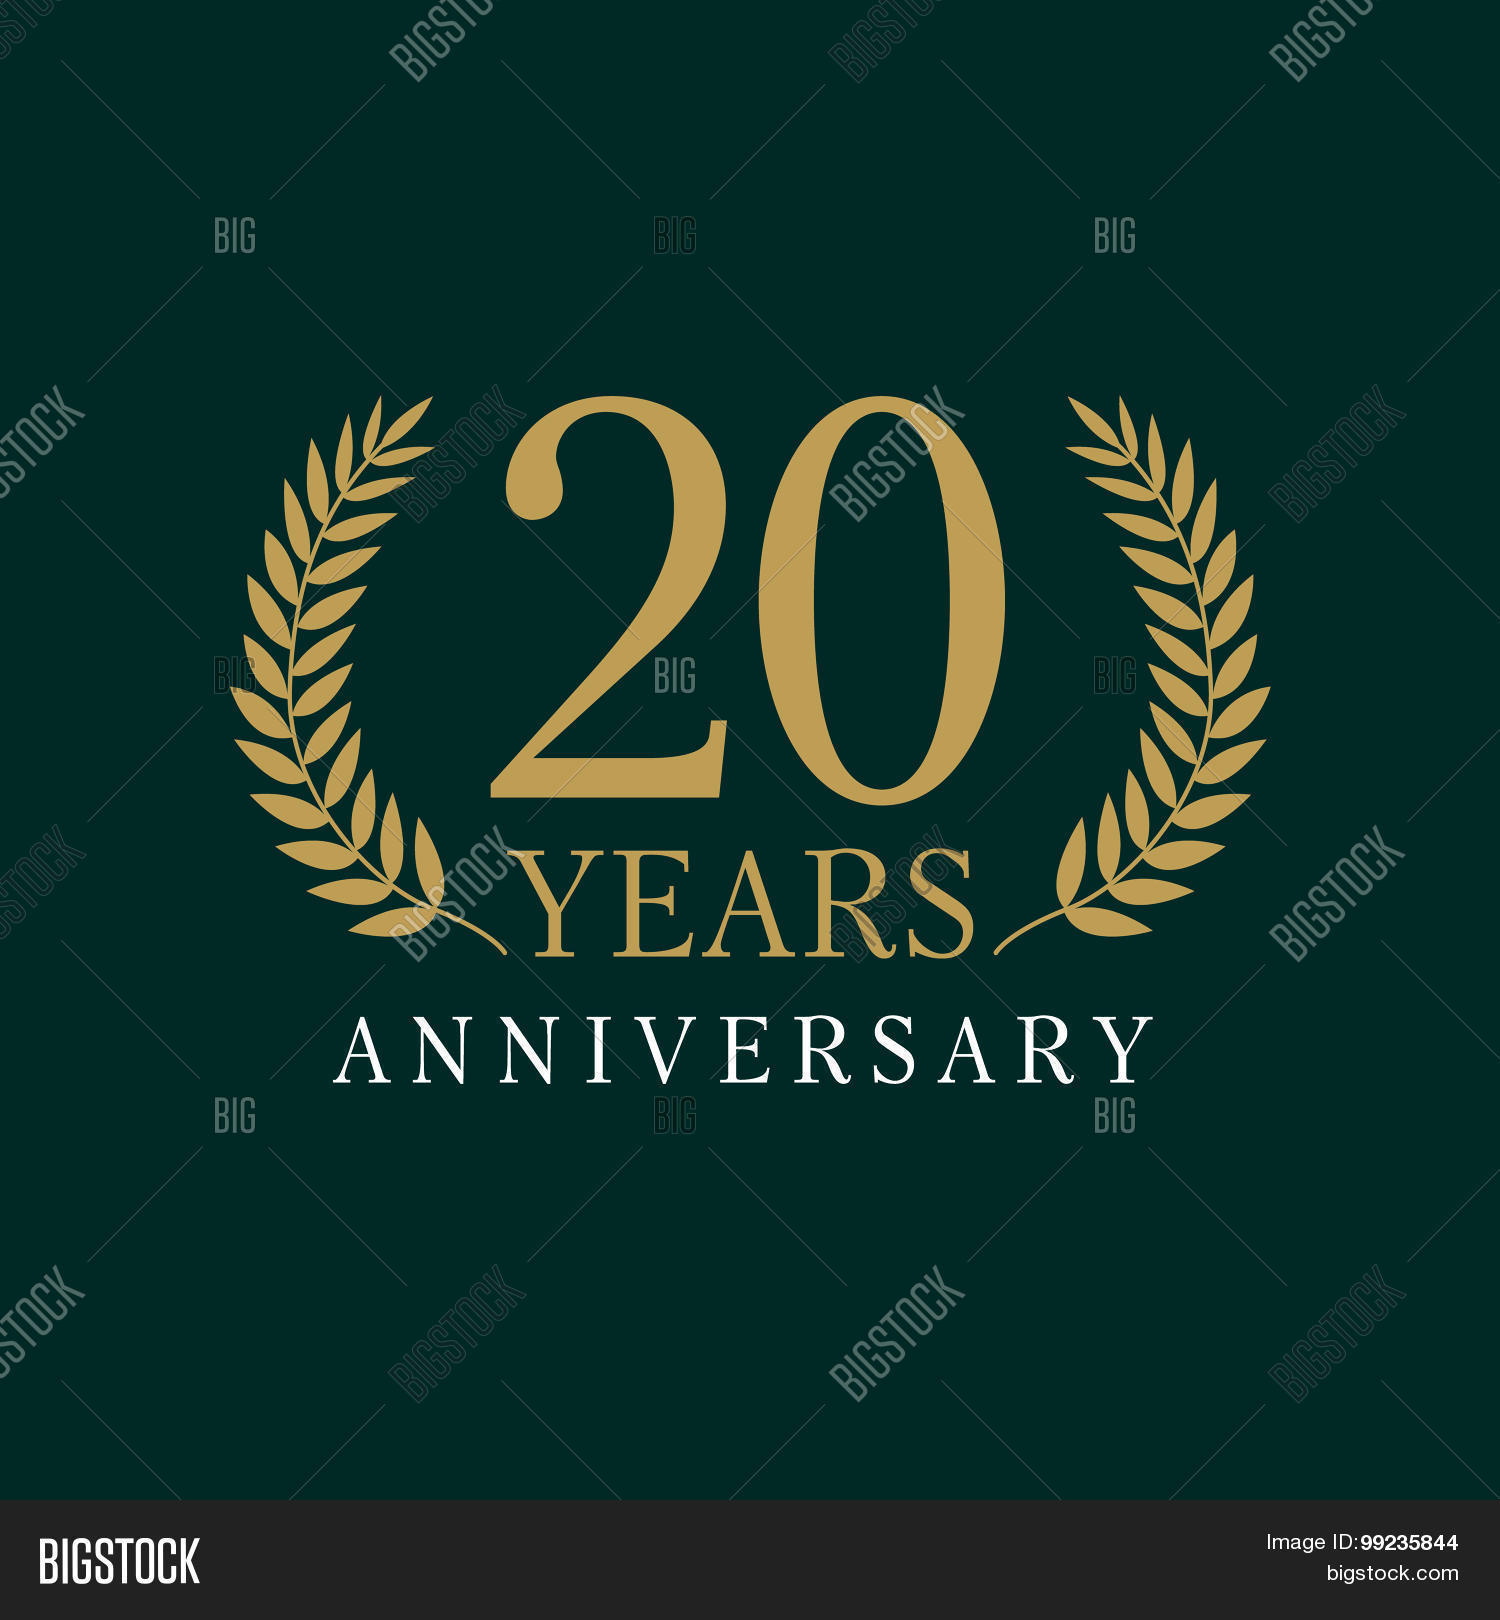 20 Years Old Vector Photo Free Trial Bigstock